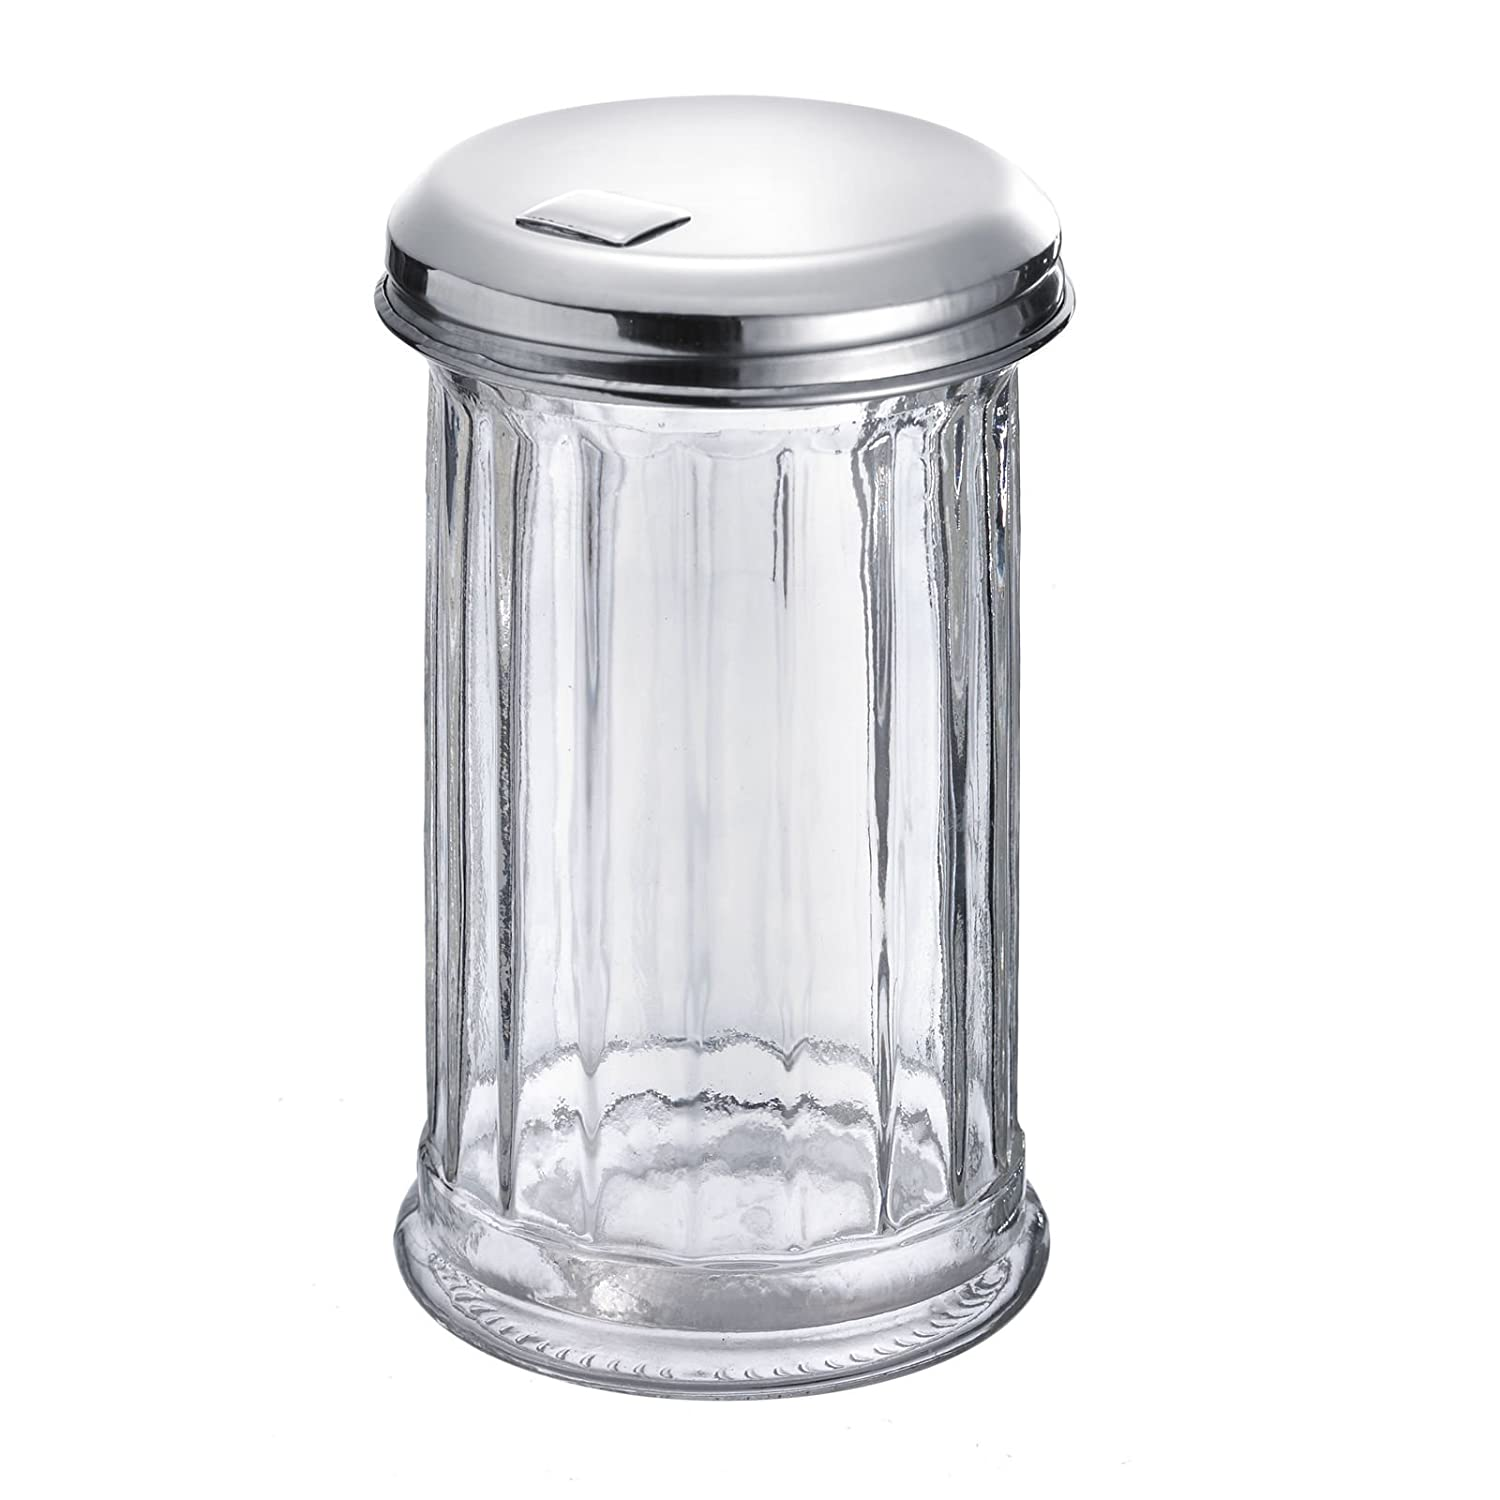 Westmark Germany 'New York' Glass Sugar Dispenser with a Flap Top, Stainless Steel 65202260